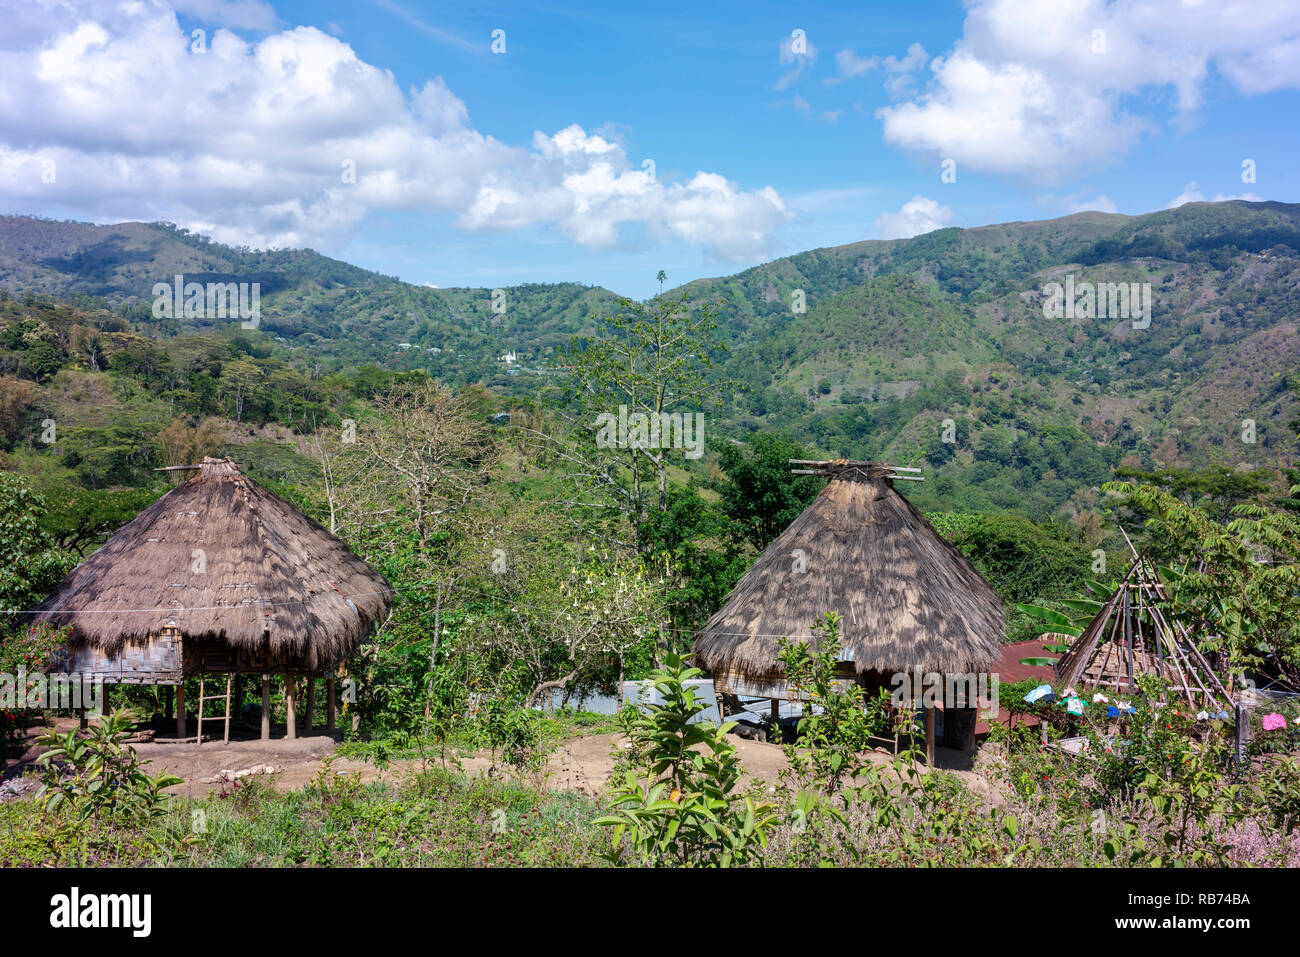 Traditional homes in the mountains of central Timor Leste. Stock Photo